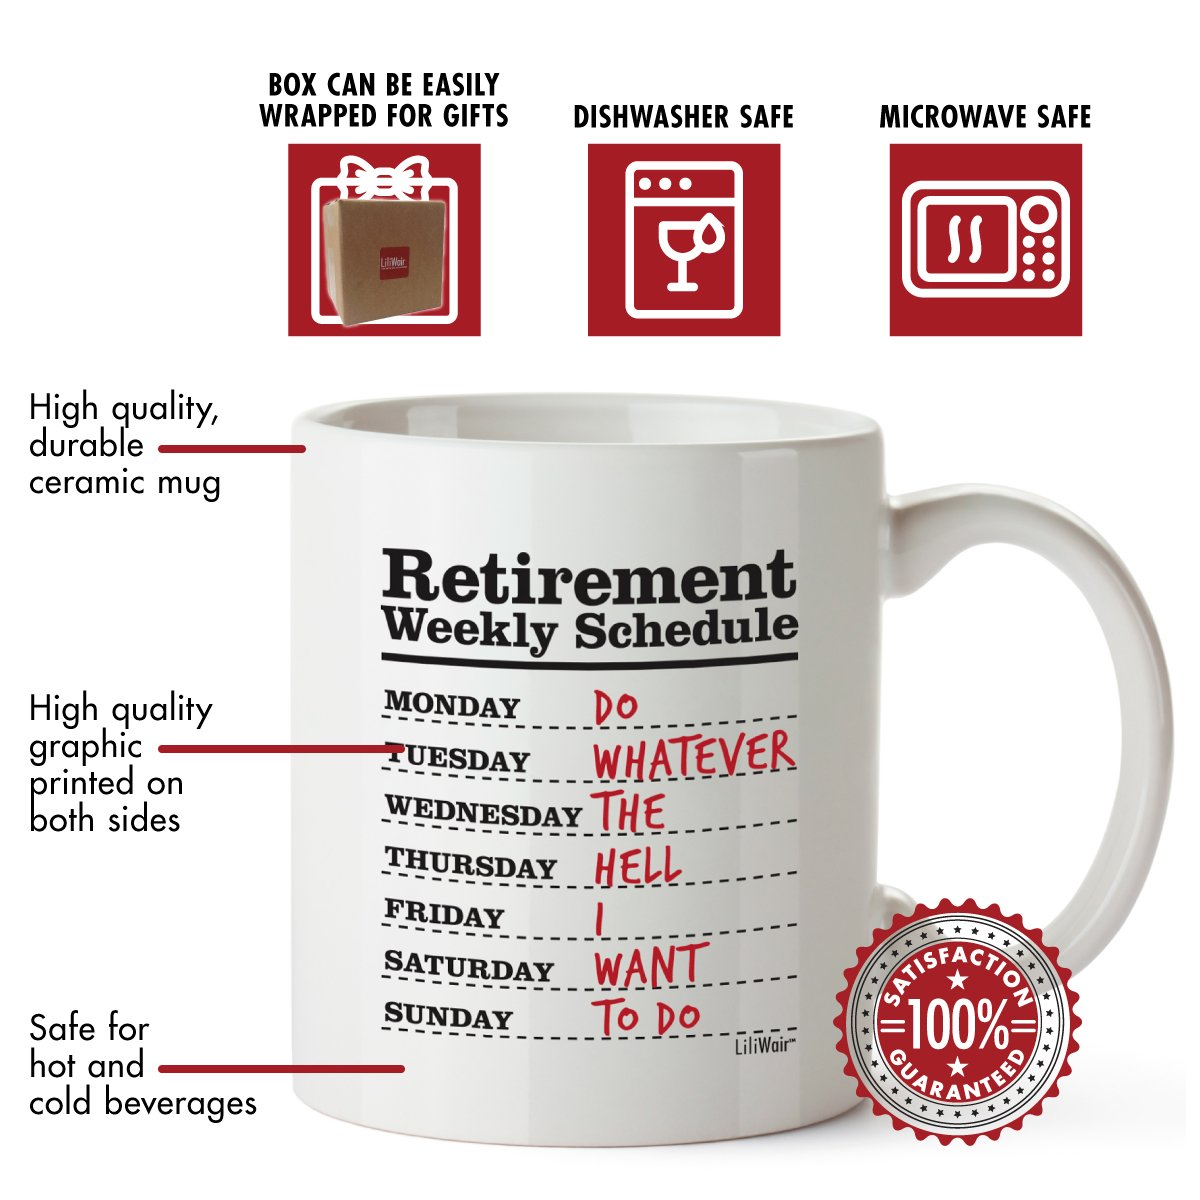 Funny Retirement Gifts for Women Men Dad Mom. Retirement Coffee Mug Gift. Retired Schedule Calendar Mugs for Coworkers Office & Family. Unique Novelty Ideas for Her Nurses Navy Air Force Military Gag by LiliWair (Image #4)